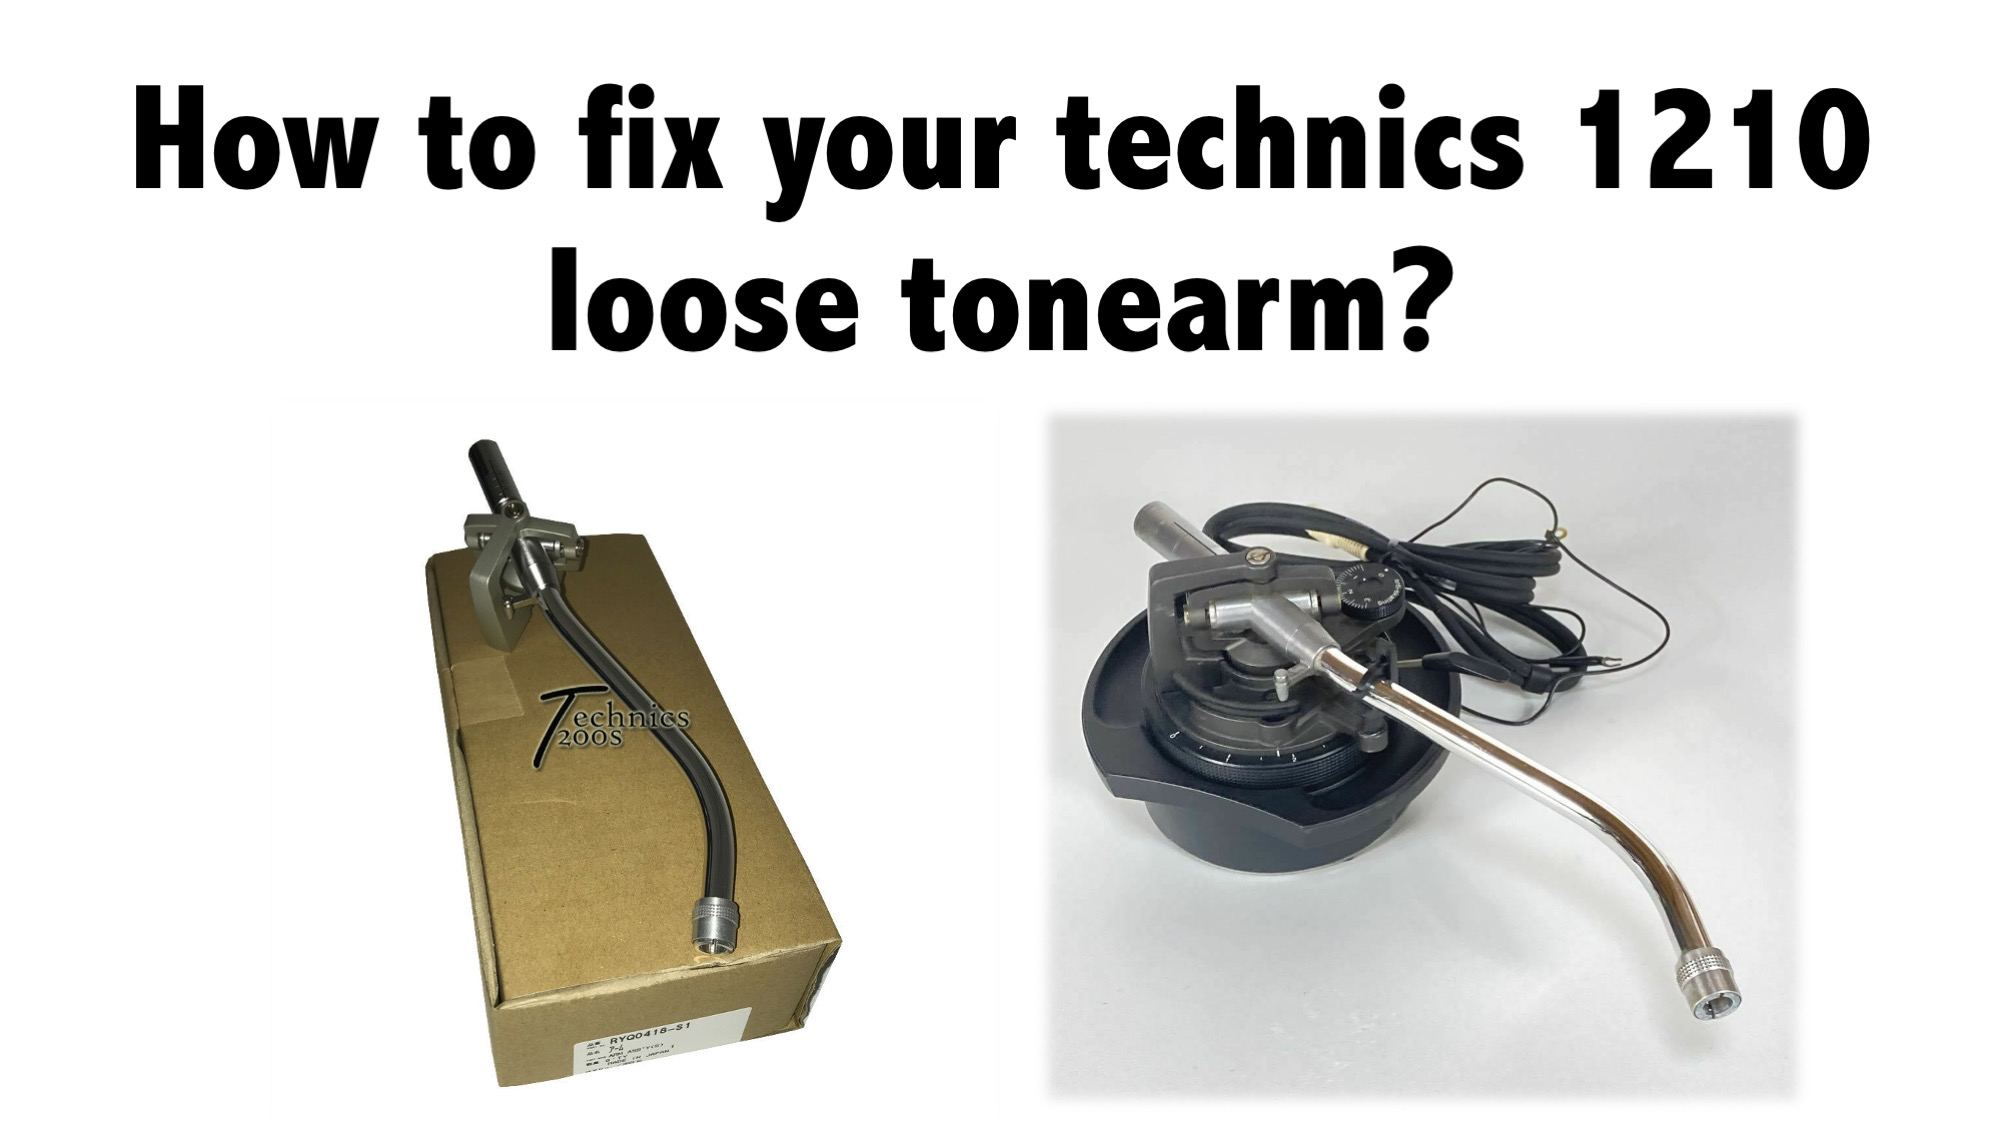 How to fix your technics 1210 loose tonearm?